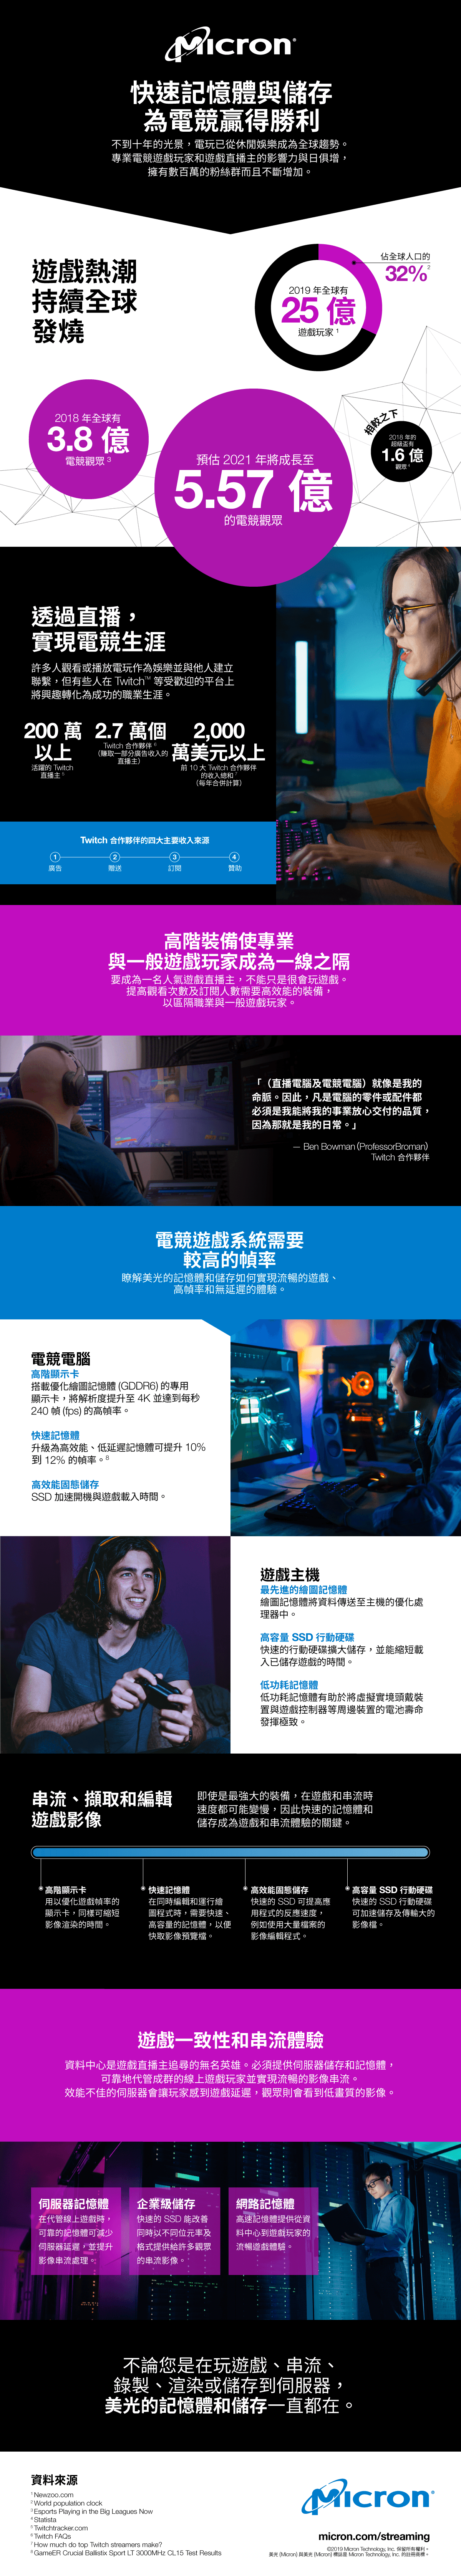 Gaming Infographic TW